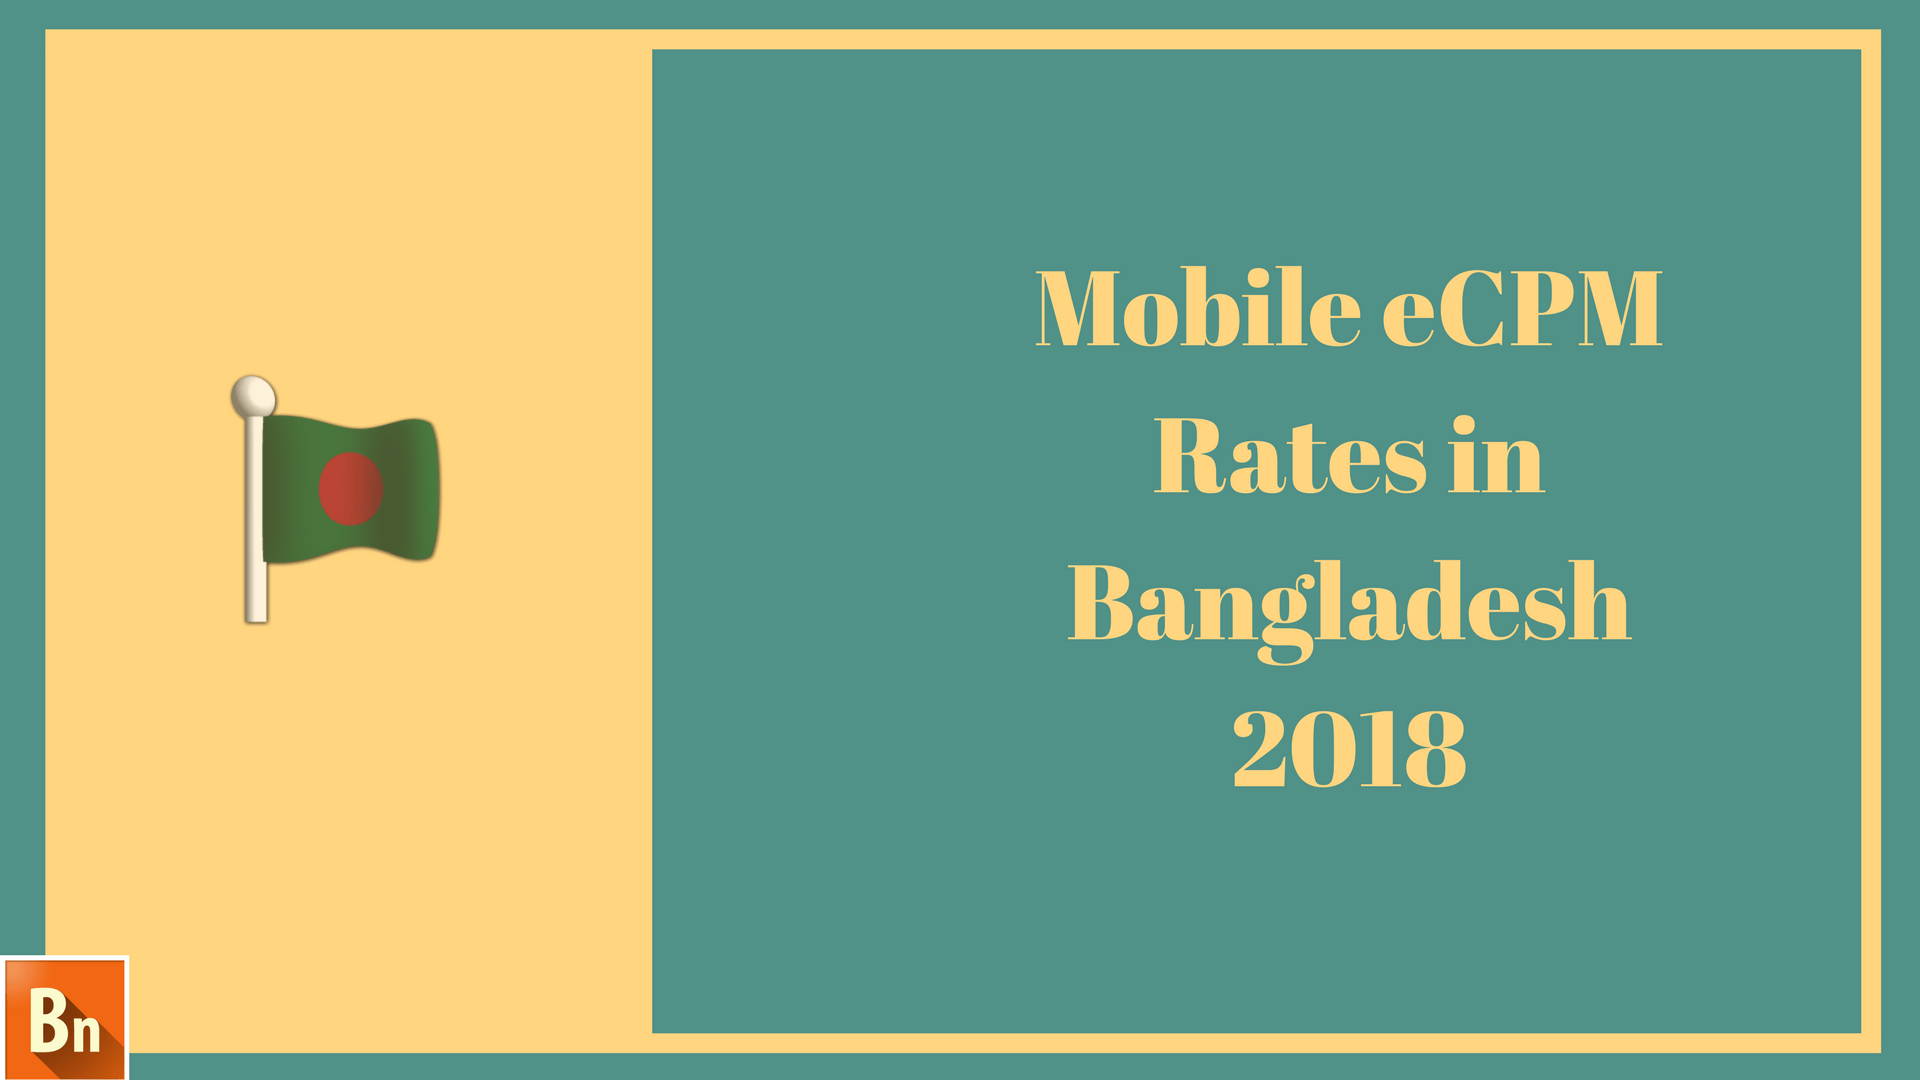 Mobile eCPM Rates in Bangladesh 2019